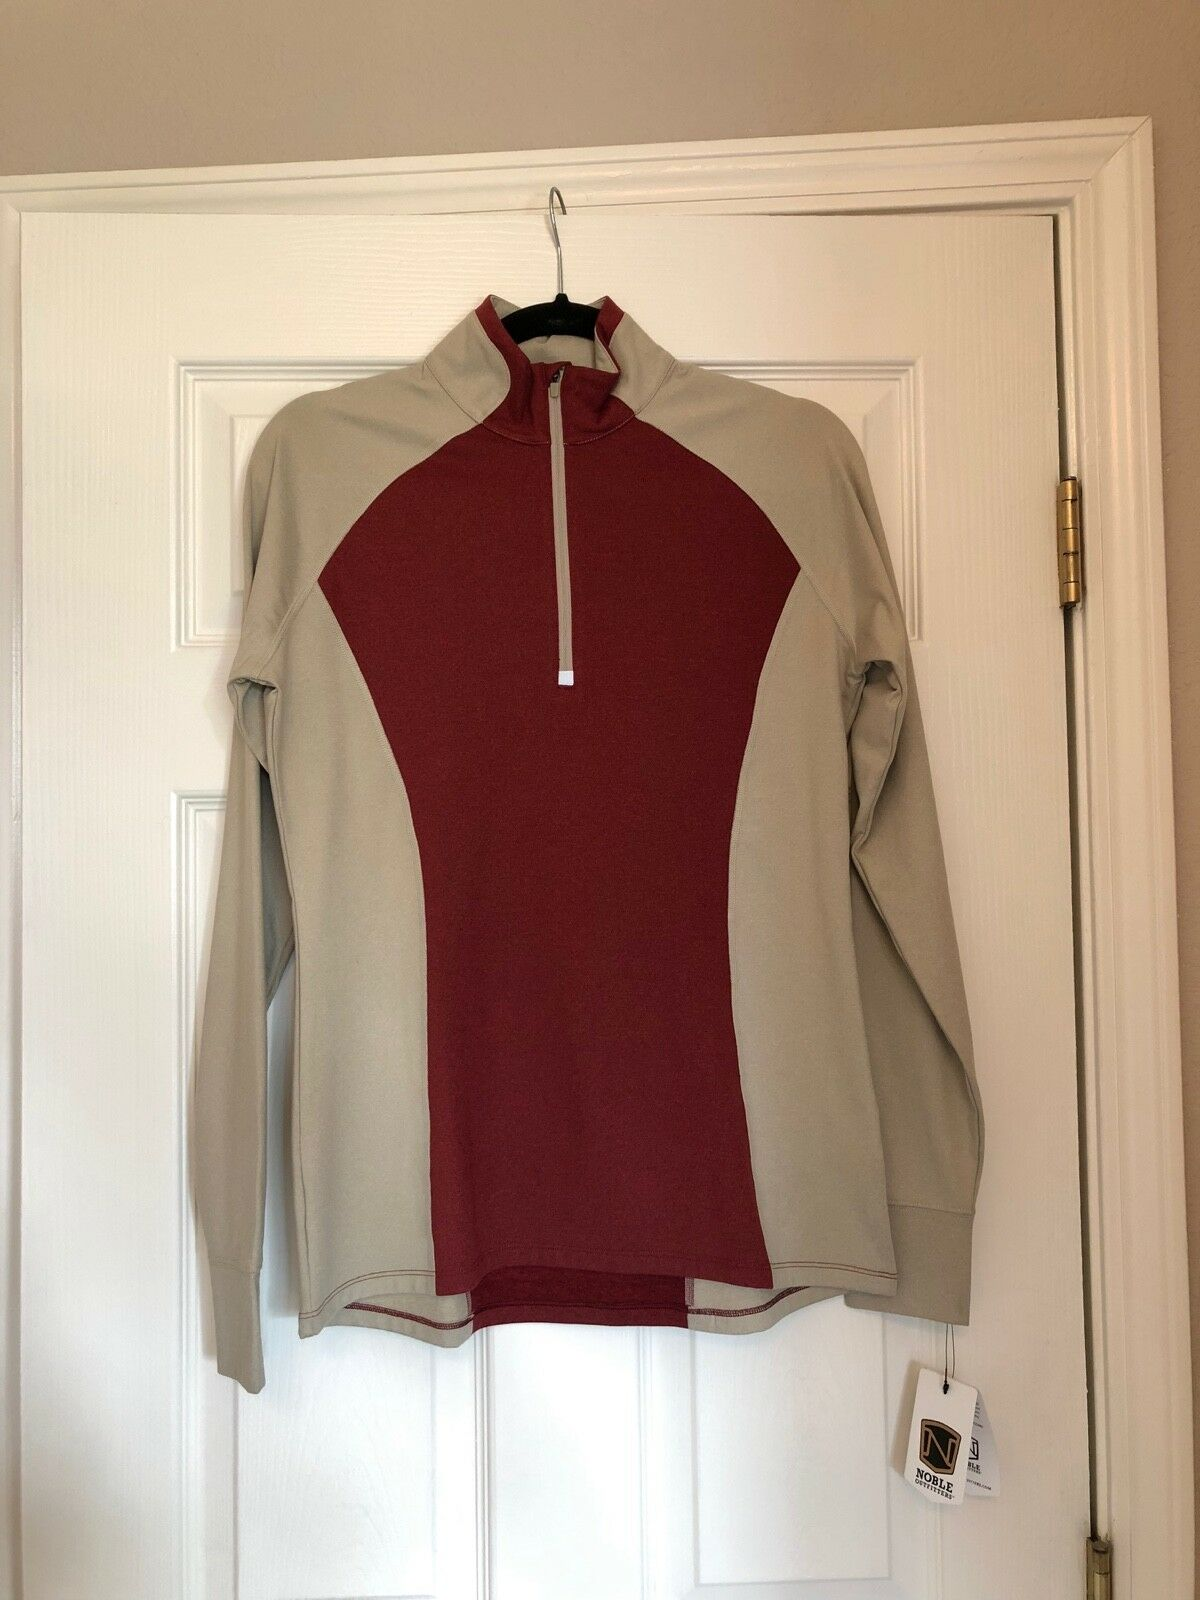 Women's Noble Outfitters L S 1 4 Zip   Athena  Performance Top  - Merlot  classic style